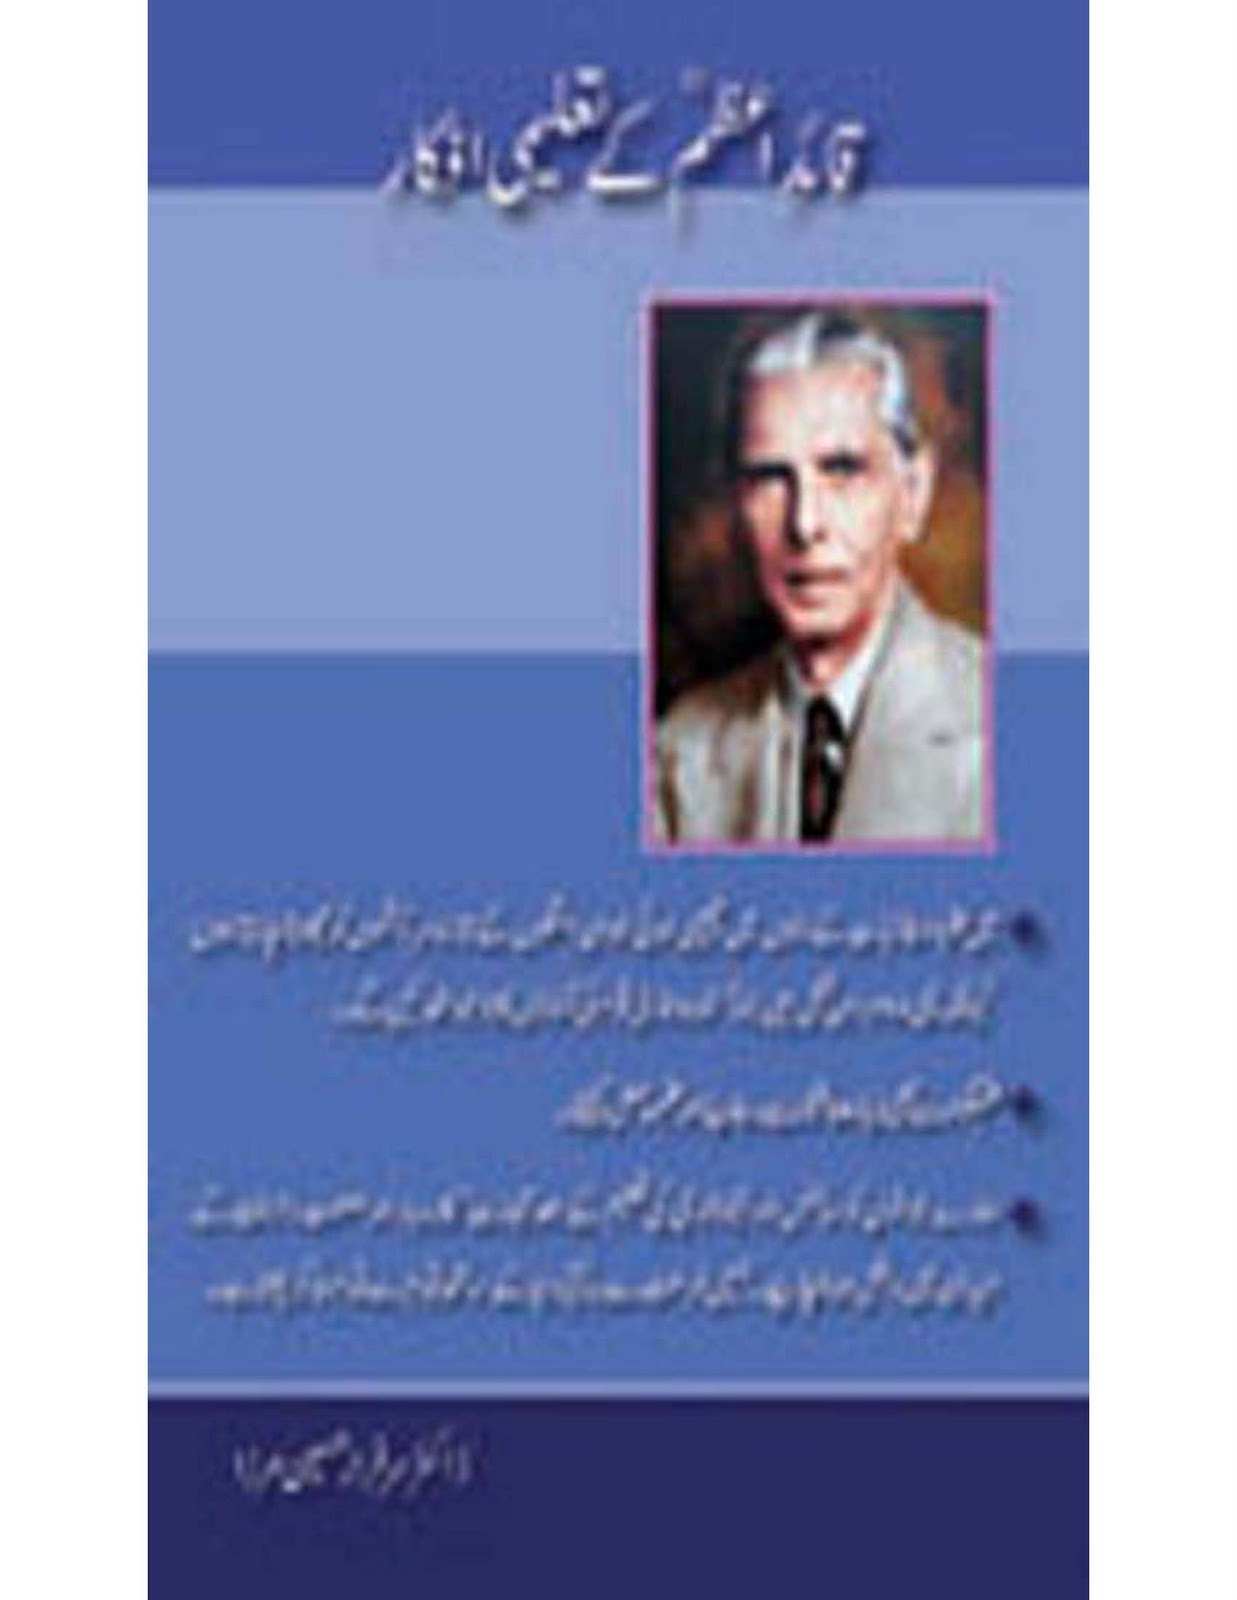 quotations on quaid e azam essay Free essays on quaid e azam quotes get help with your writing 1 through 30.